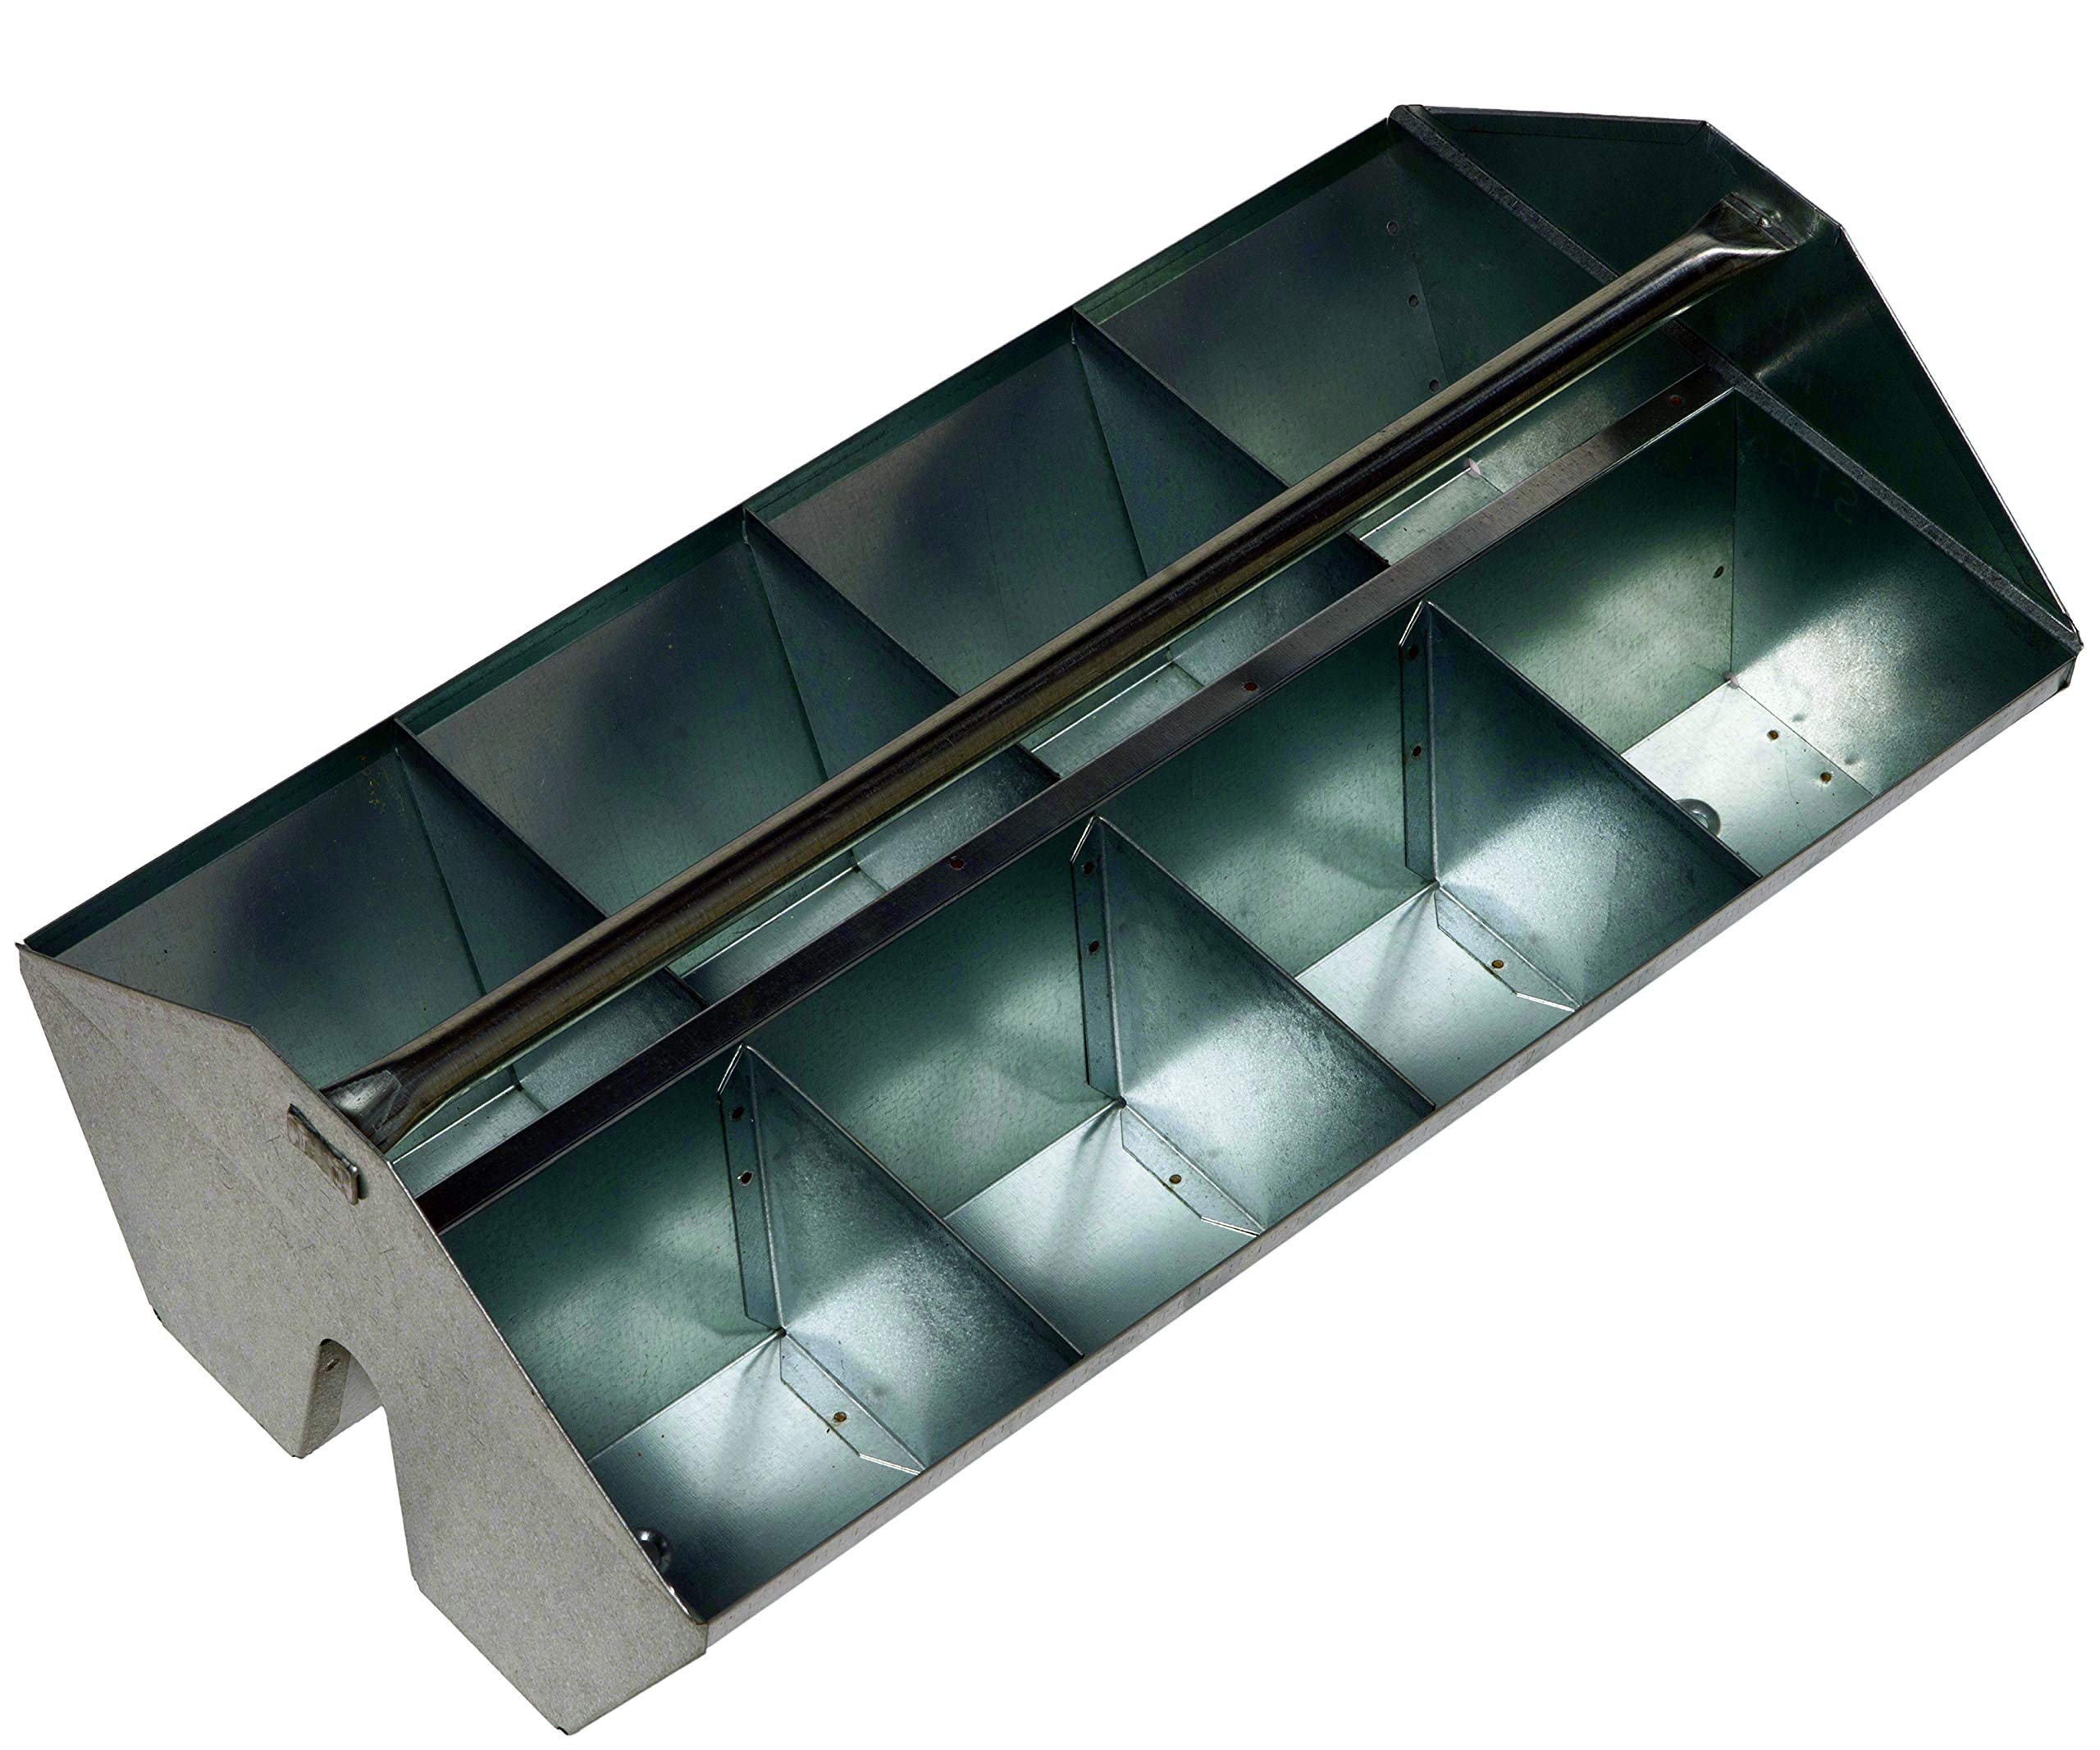 MB78010 Klenk Stak-N-Tote Fittings Tote Tray, 8 Compartment by KLENK